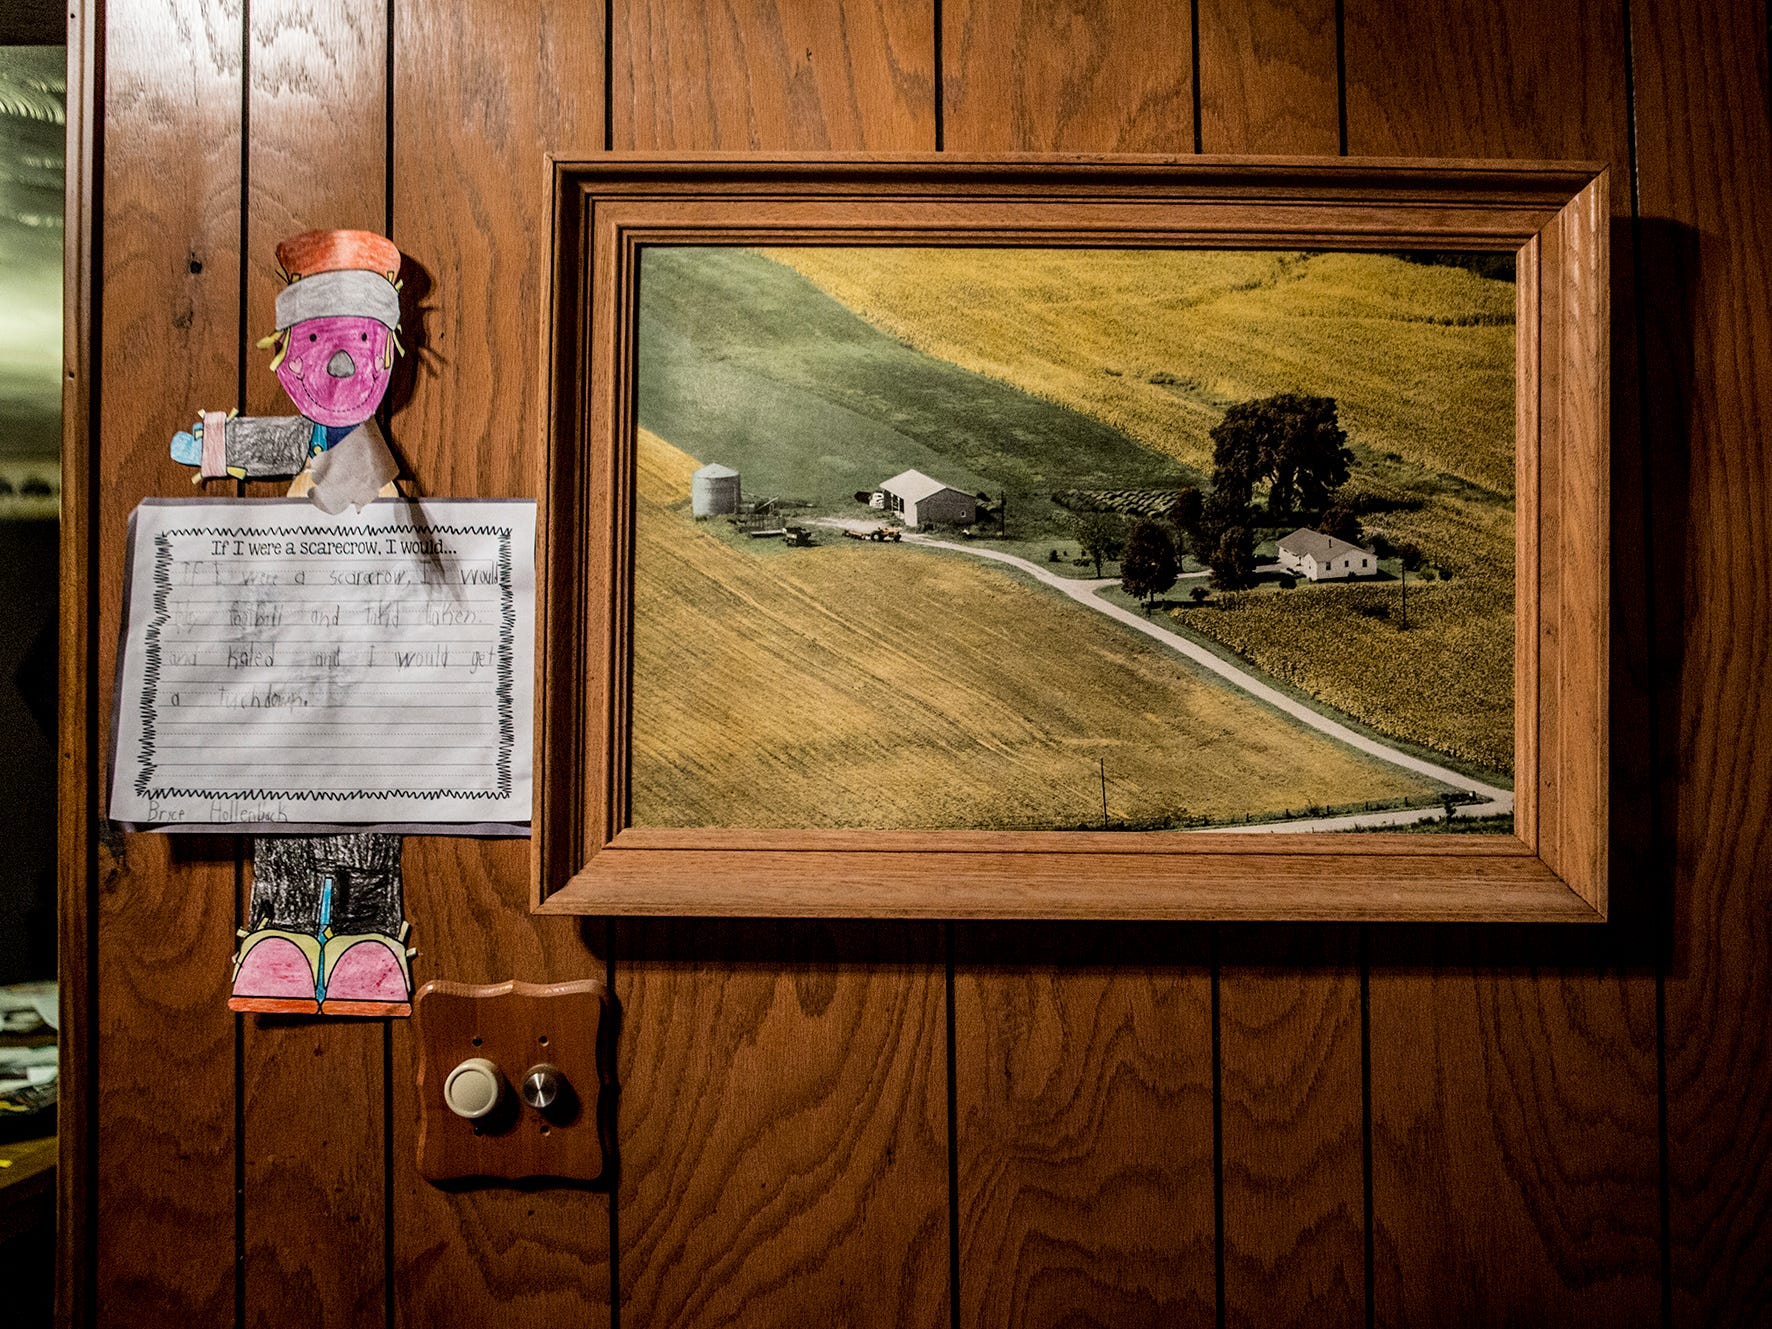 Andy and Mamie have a photo of the farm as it was when they bought in in 2003 hanging on their wall. The couple have made many improvements since then, including more Granin bins and barns to store their upgraded equipment.